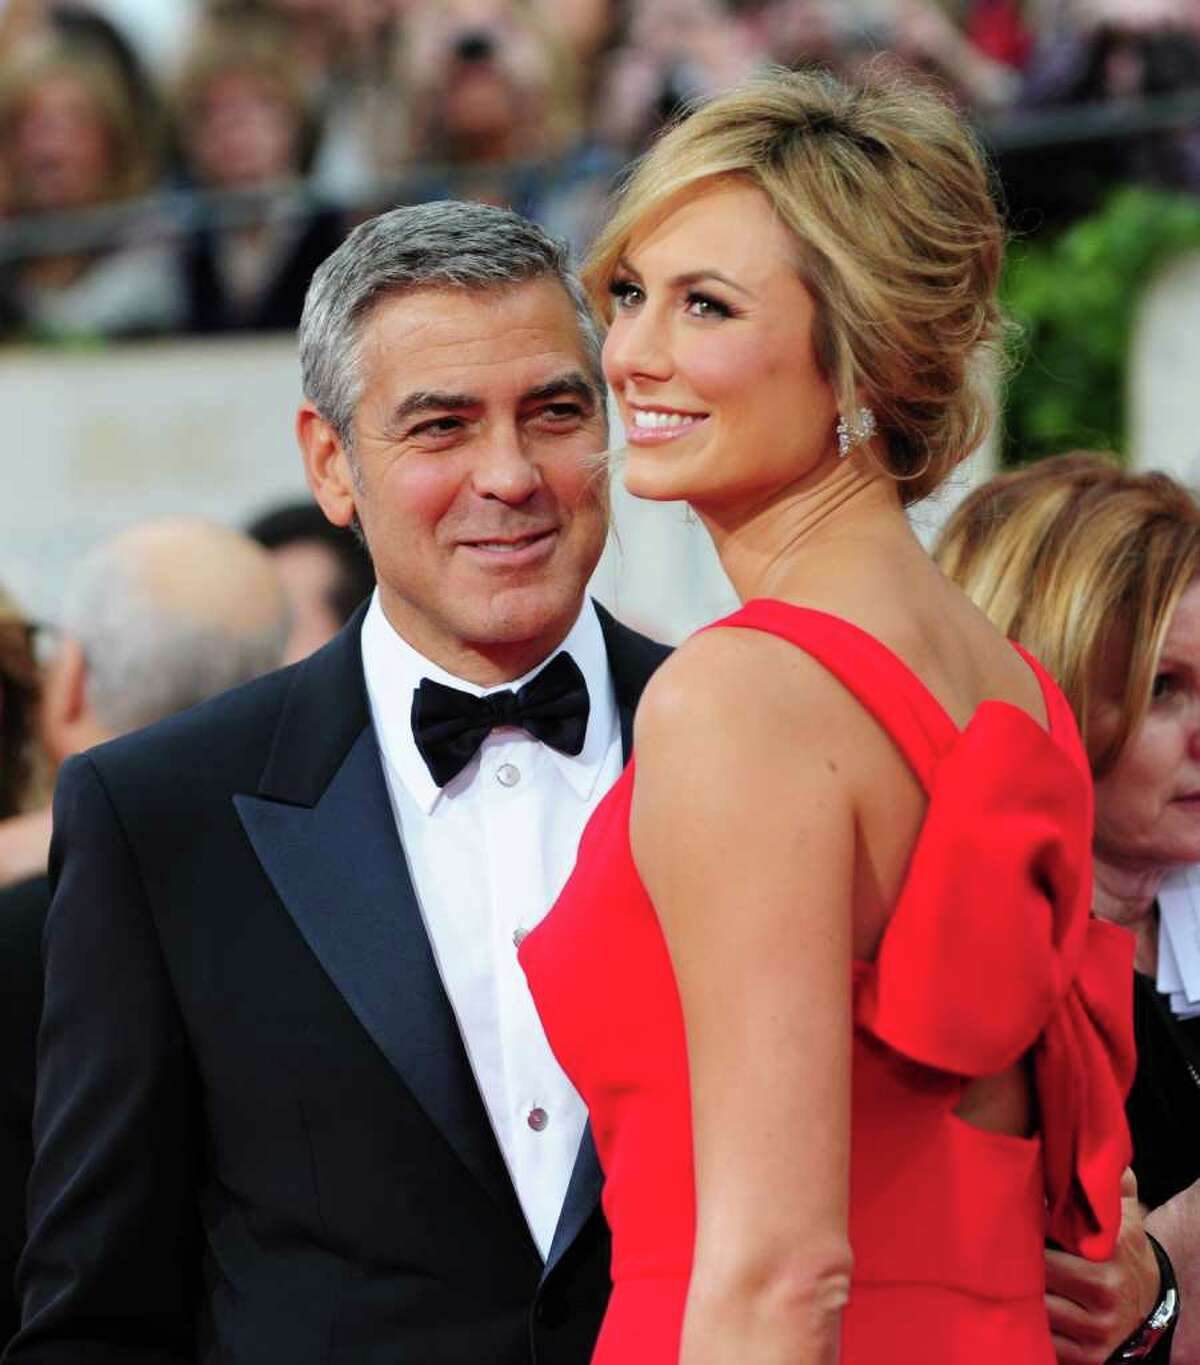 George Clooney's girlfriend Stacy Keibler was once a cheerleader for the Ravens.